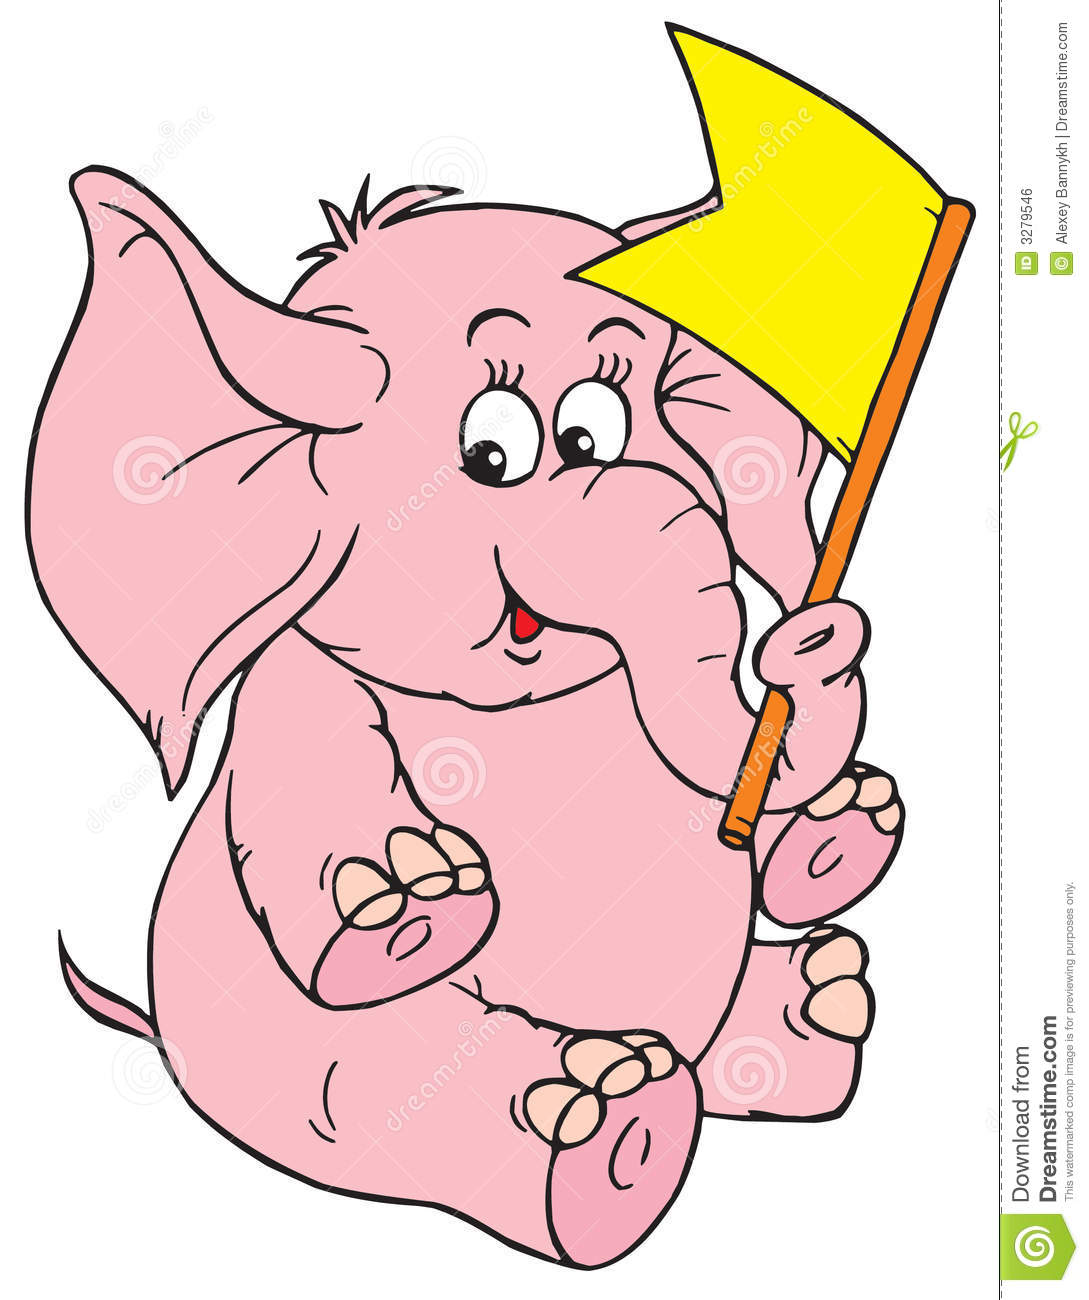 Elephant (vector Clip-art) Royalty Free Stock Image - Image: 3279546